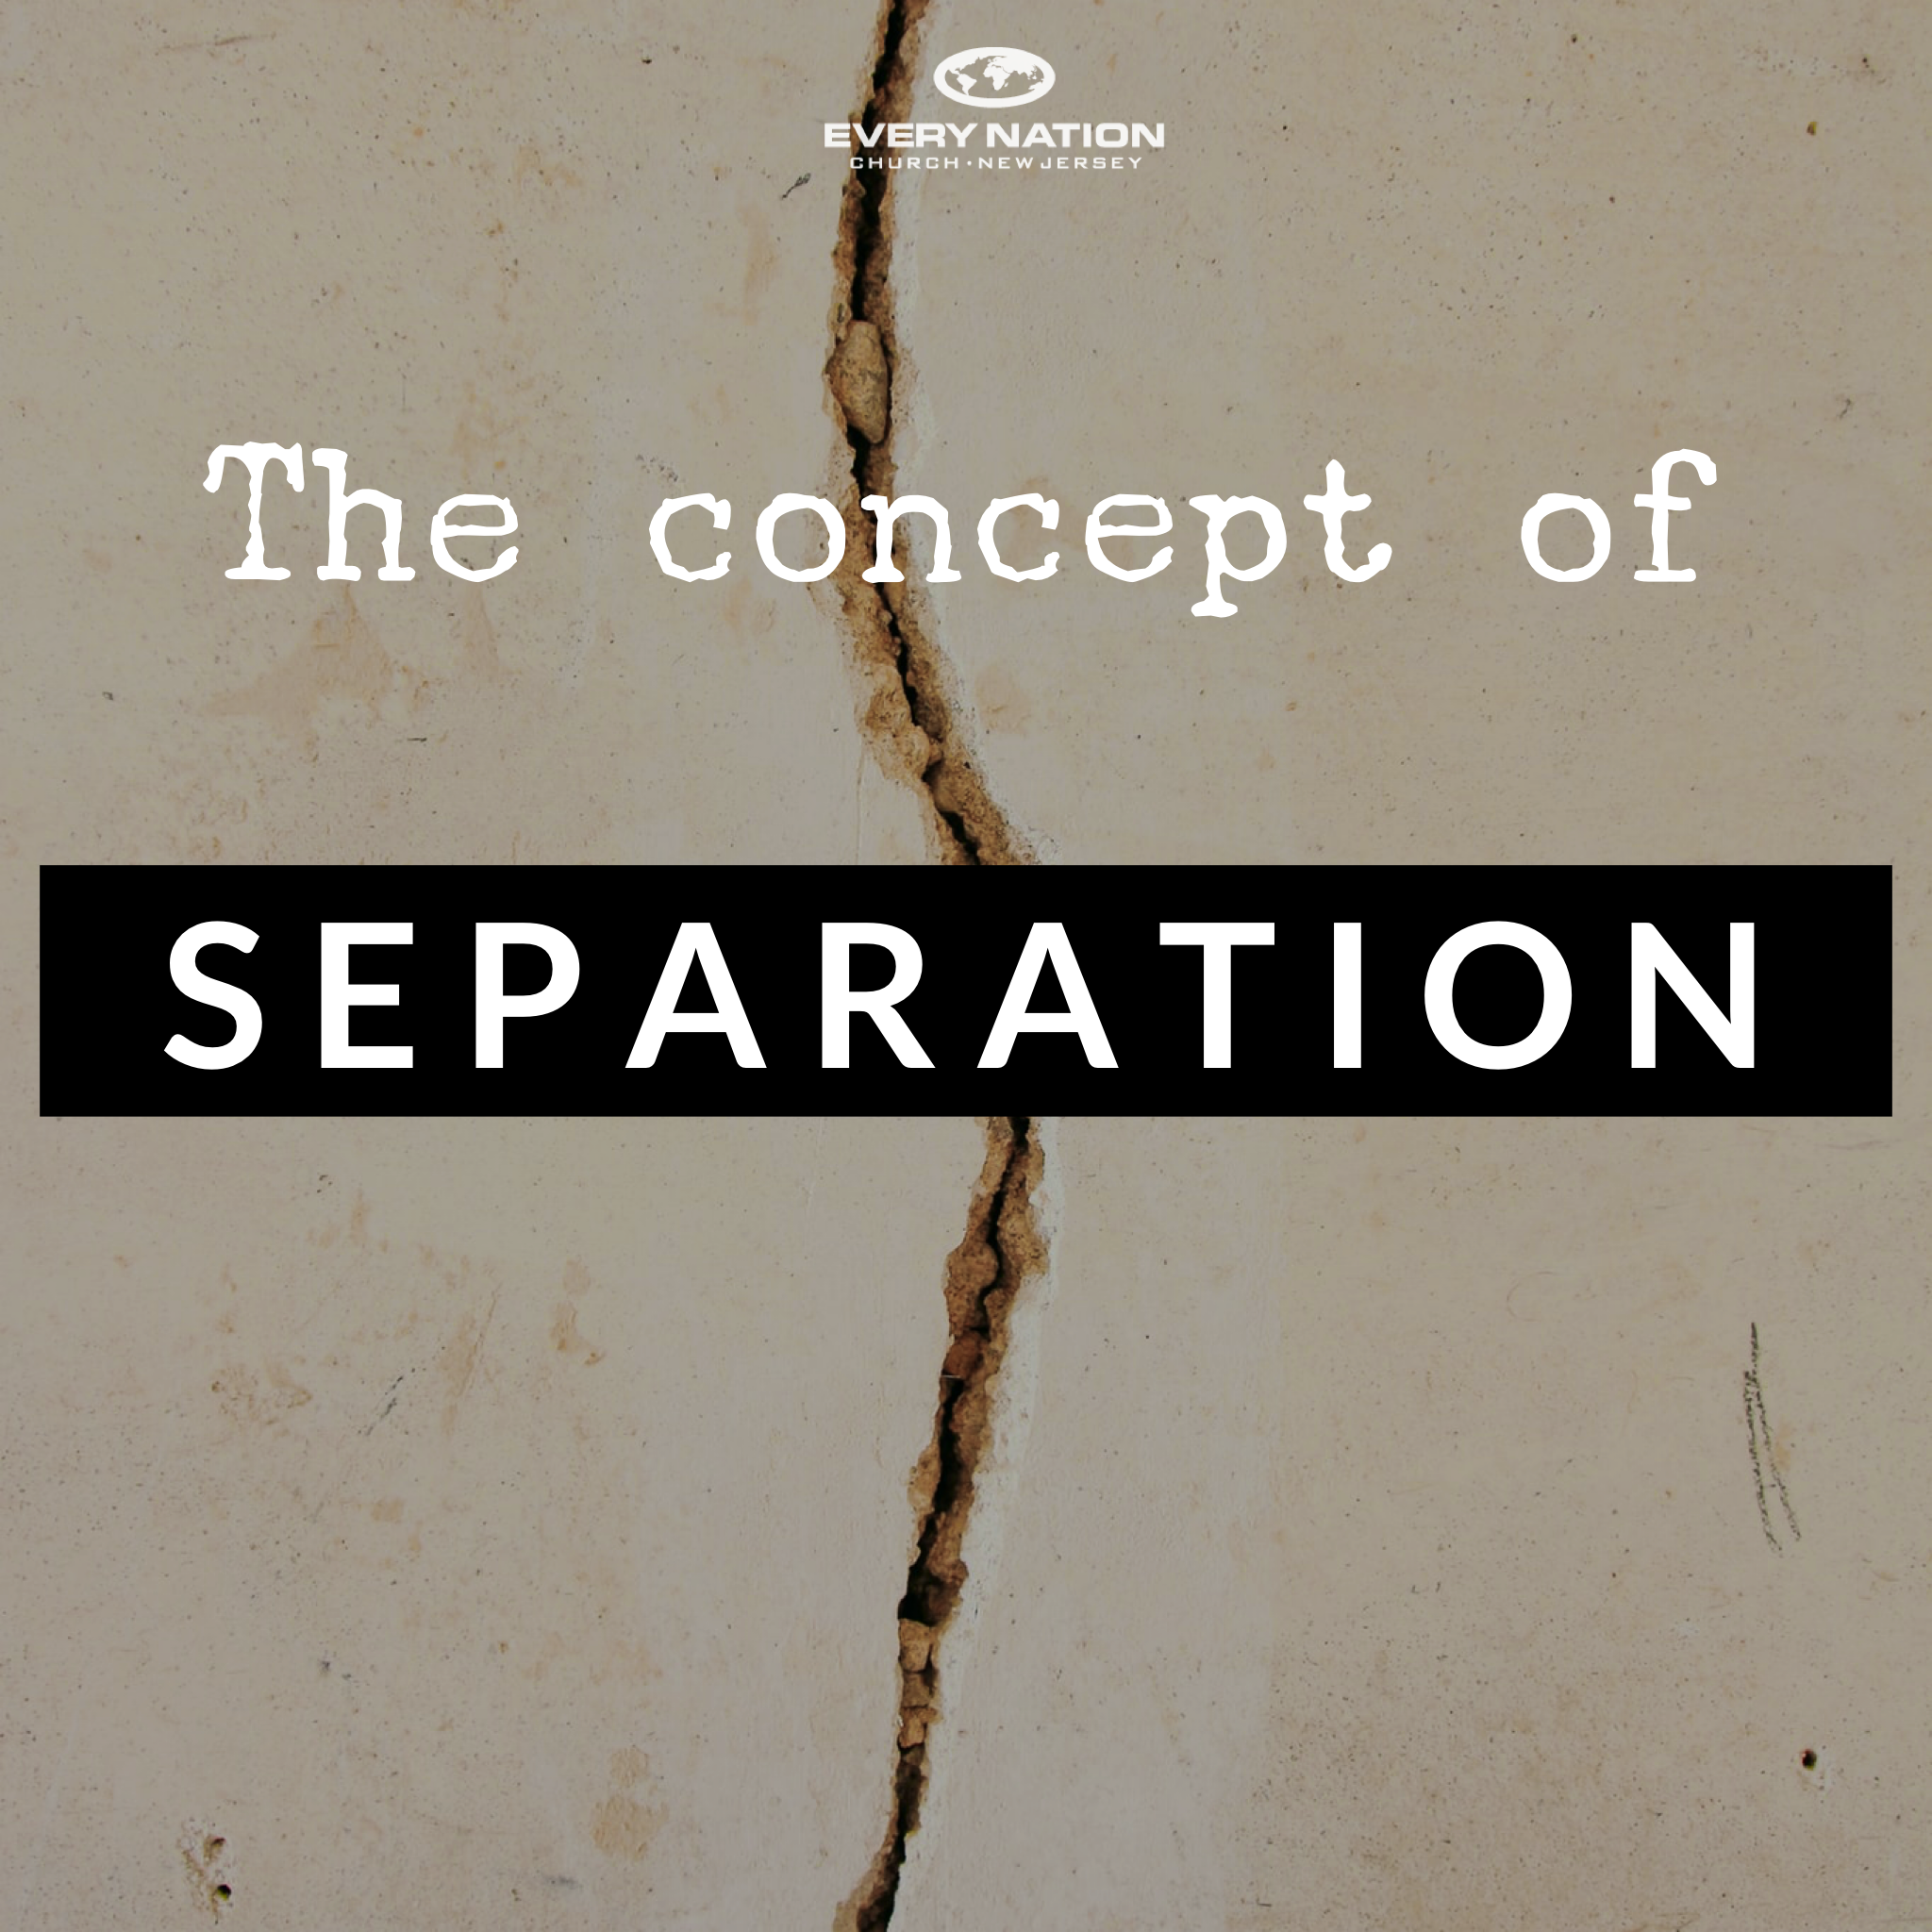 The Concept of Separation